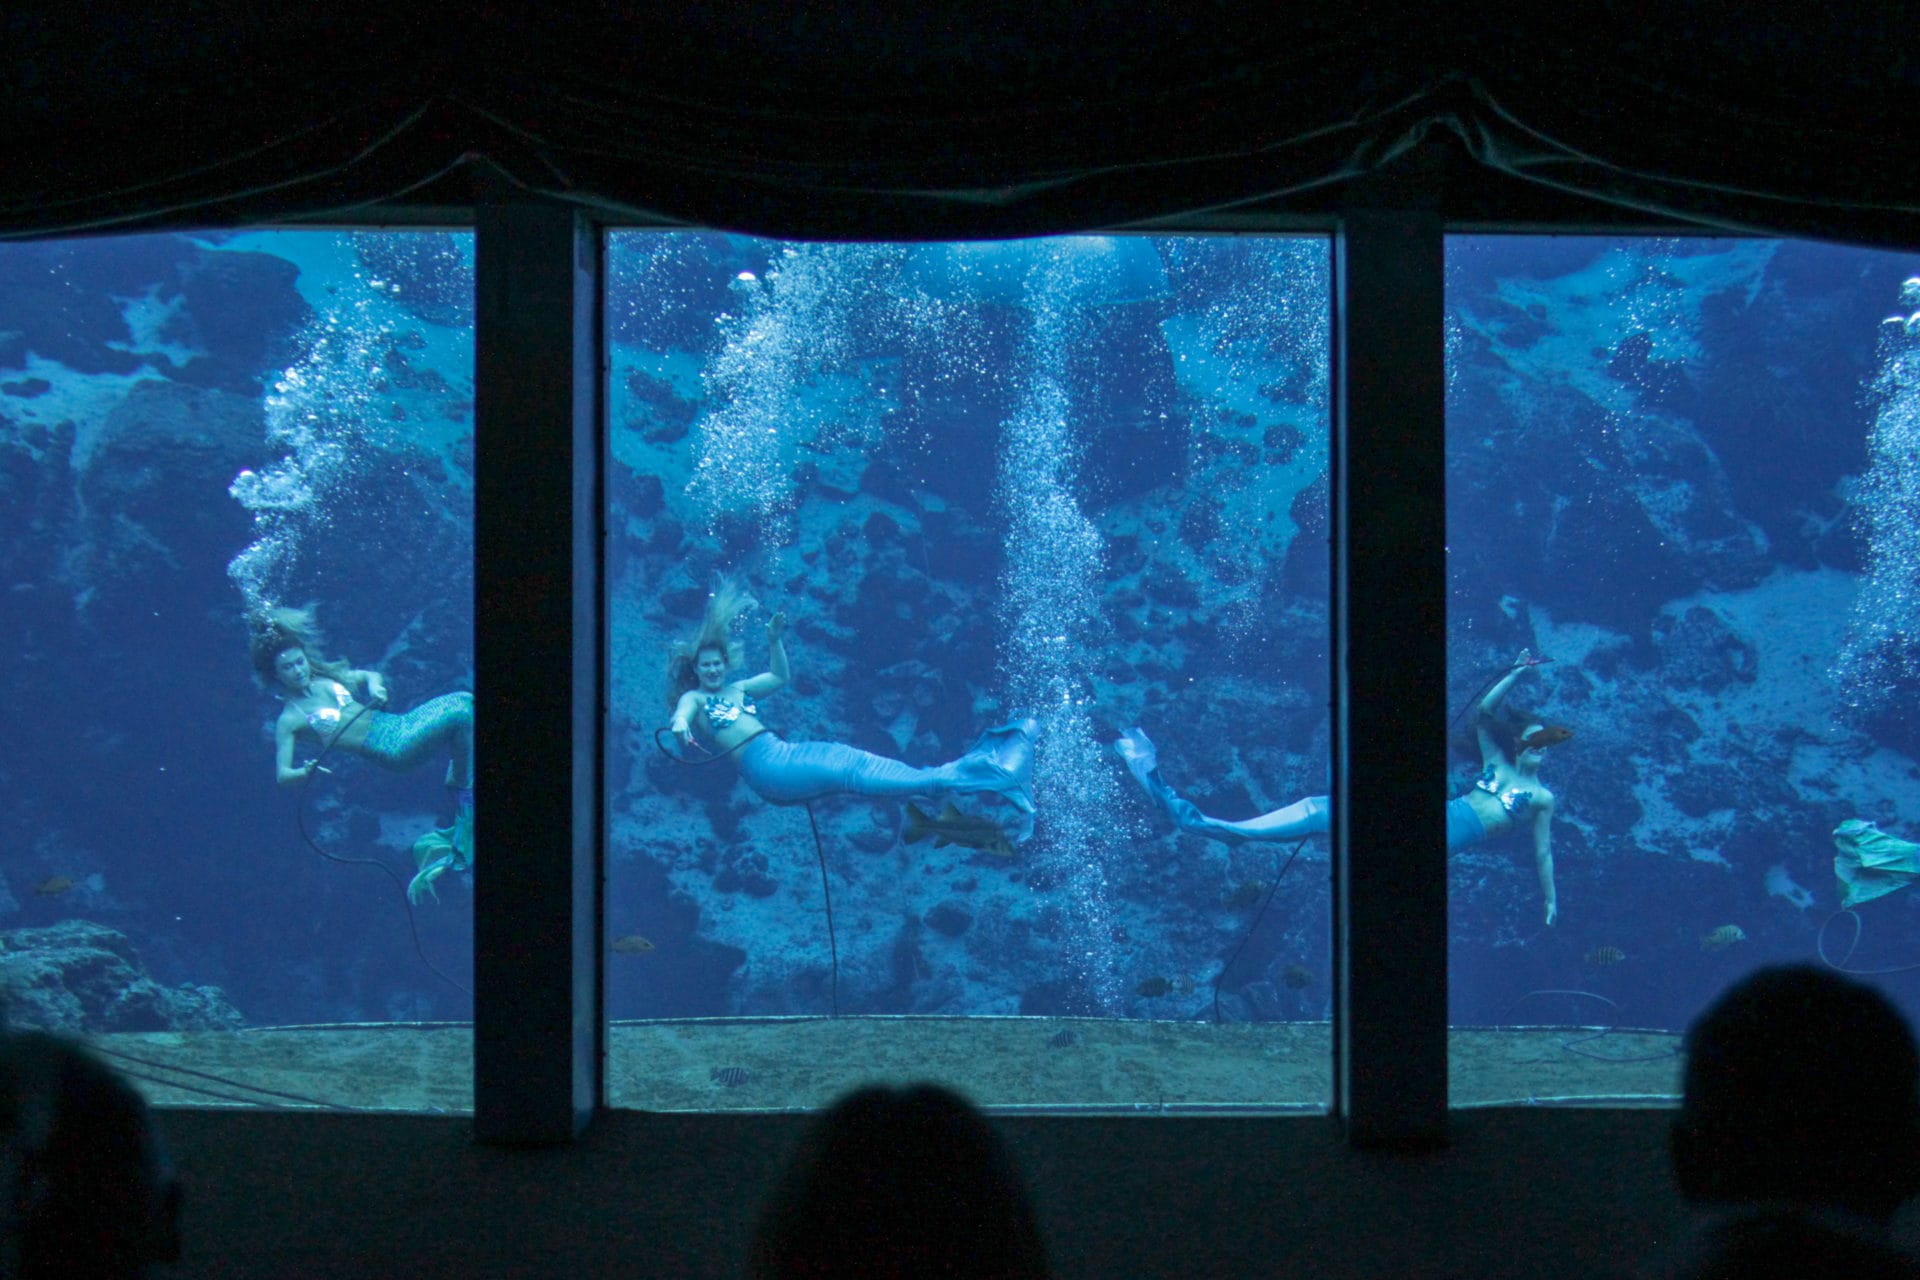 The mermaids perform 365 days a year.